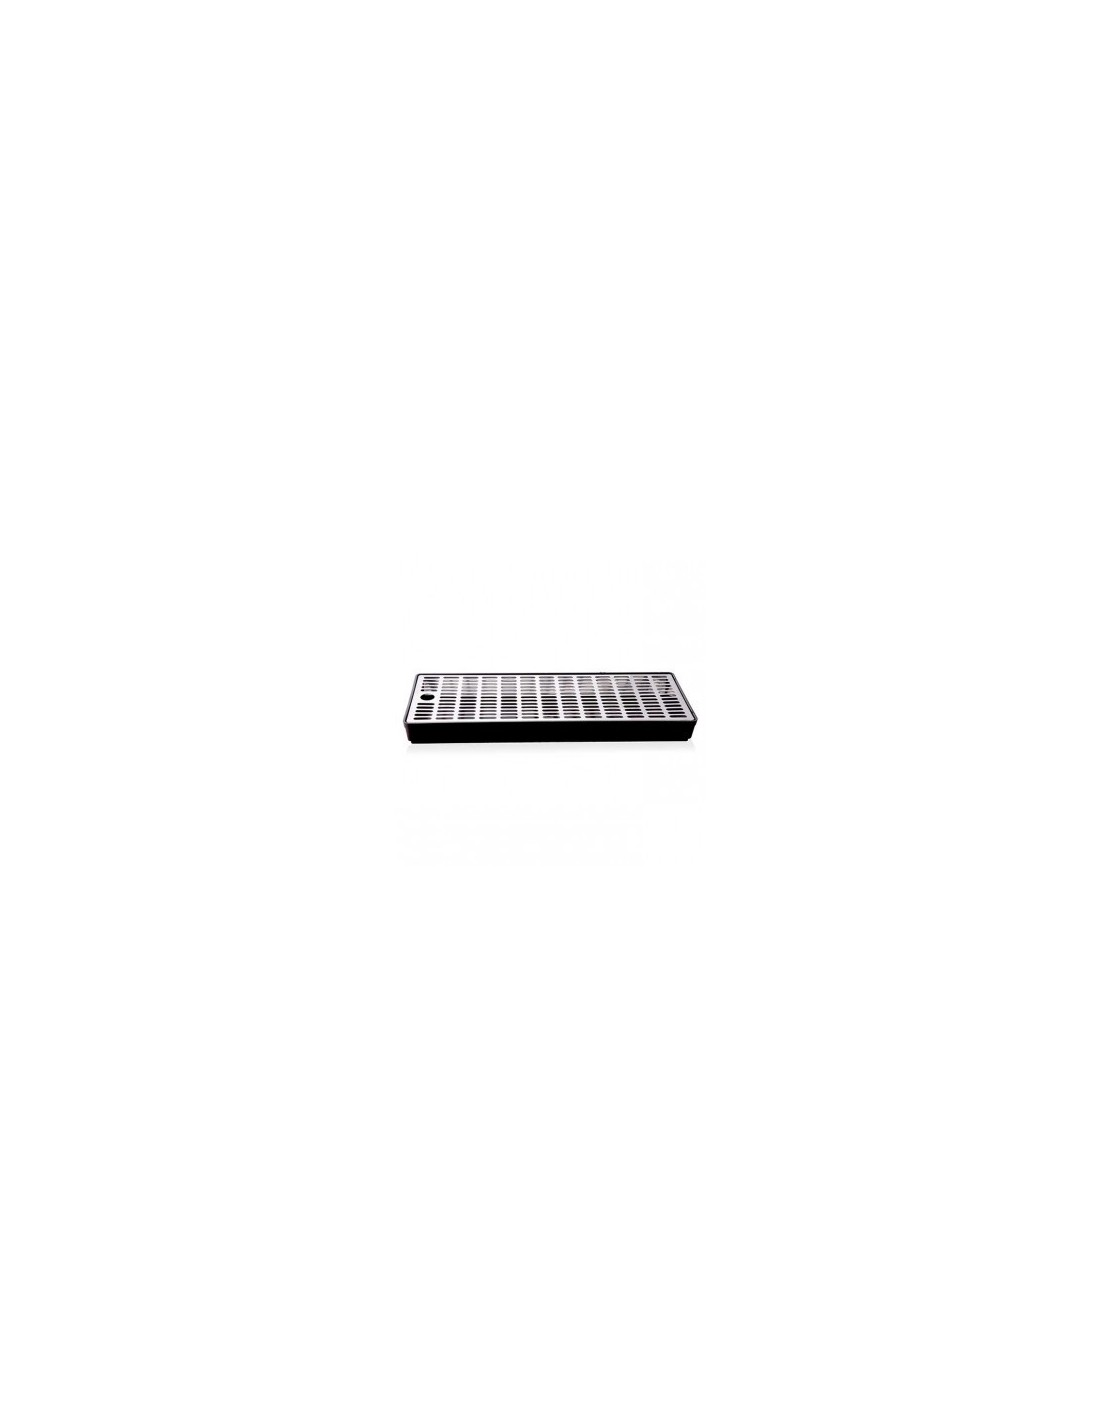 VYR02273 - Drip tray in plastic with grate in stainless steel 400x150x35 mm